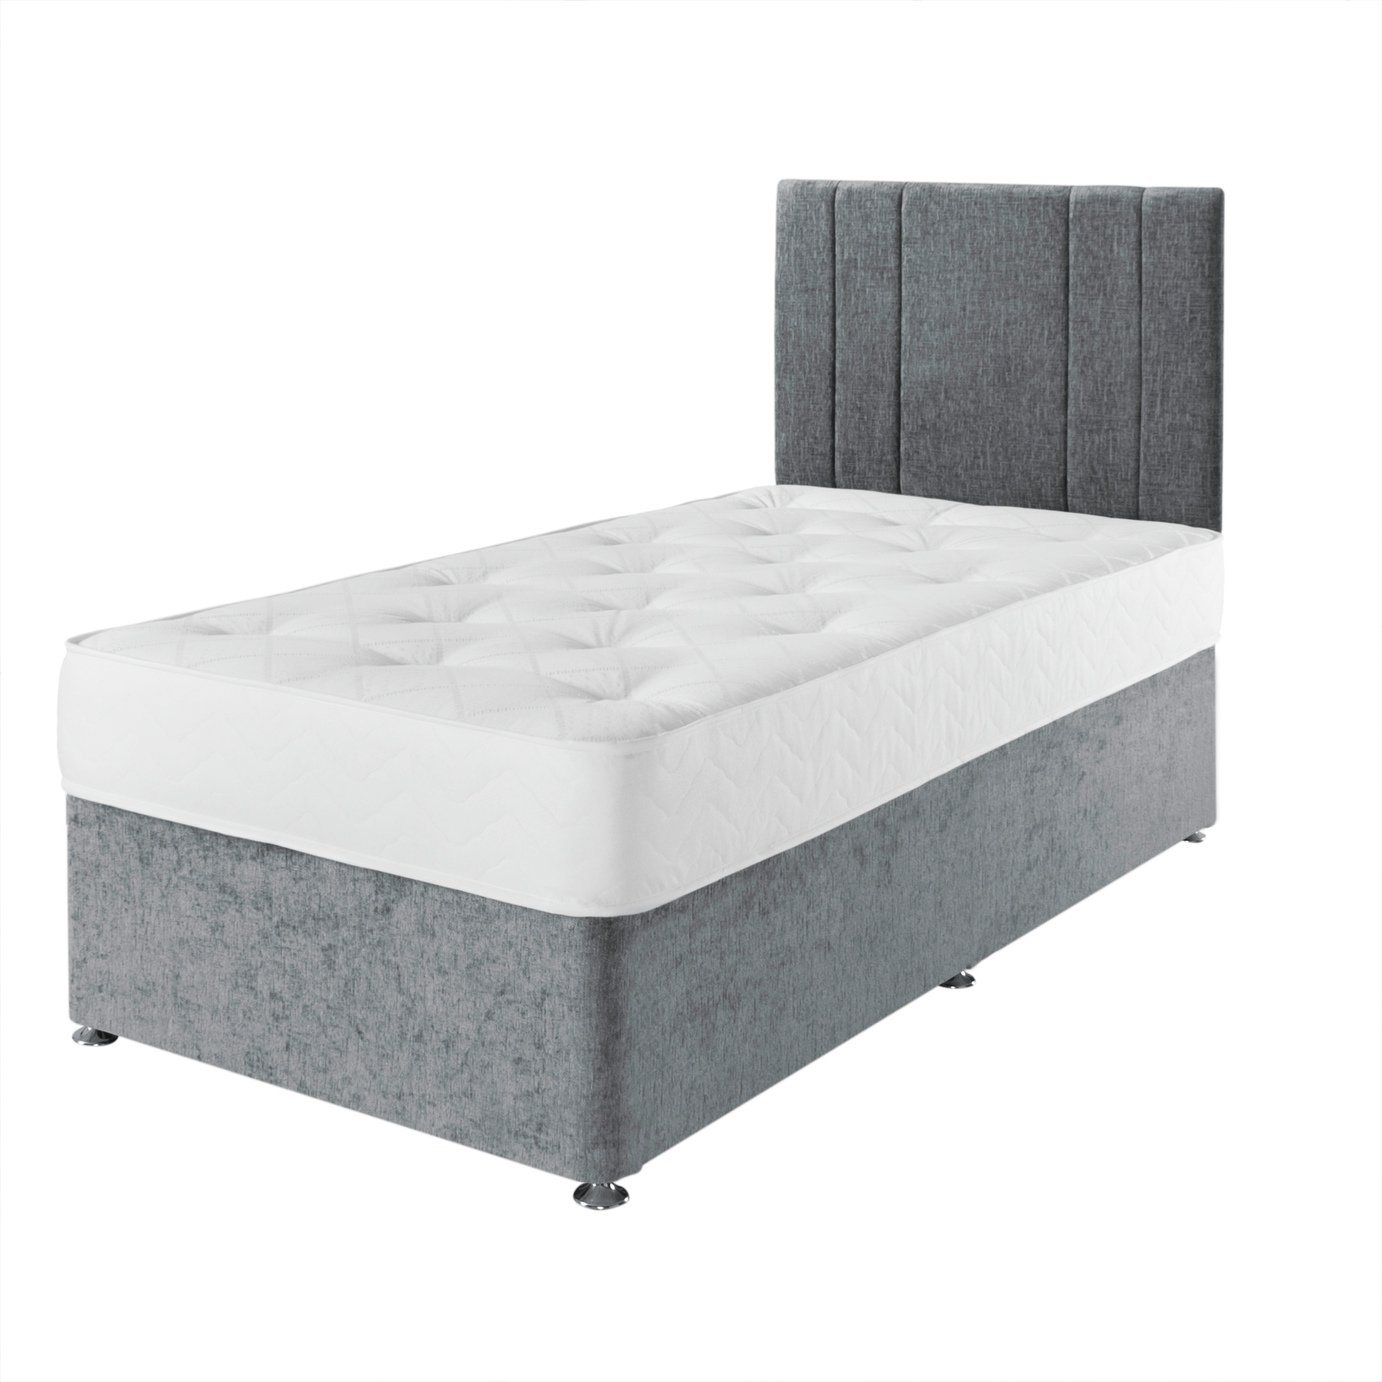 Inflatable Beds Argos: Airsprung Henlow 1200 Pocket Divan